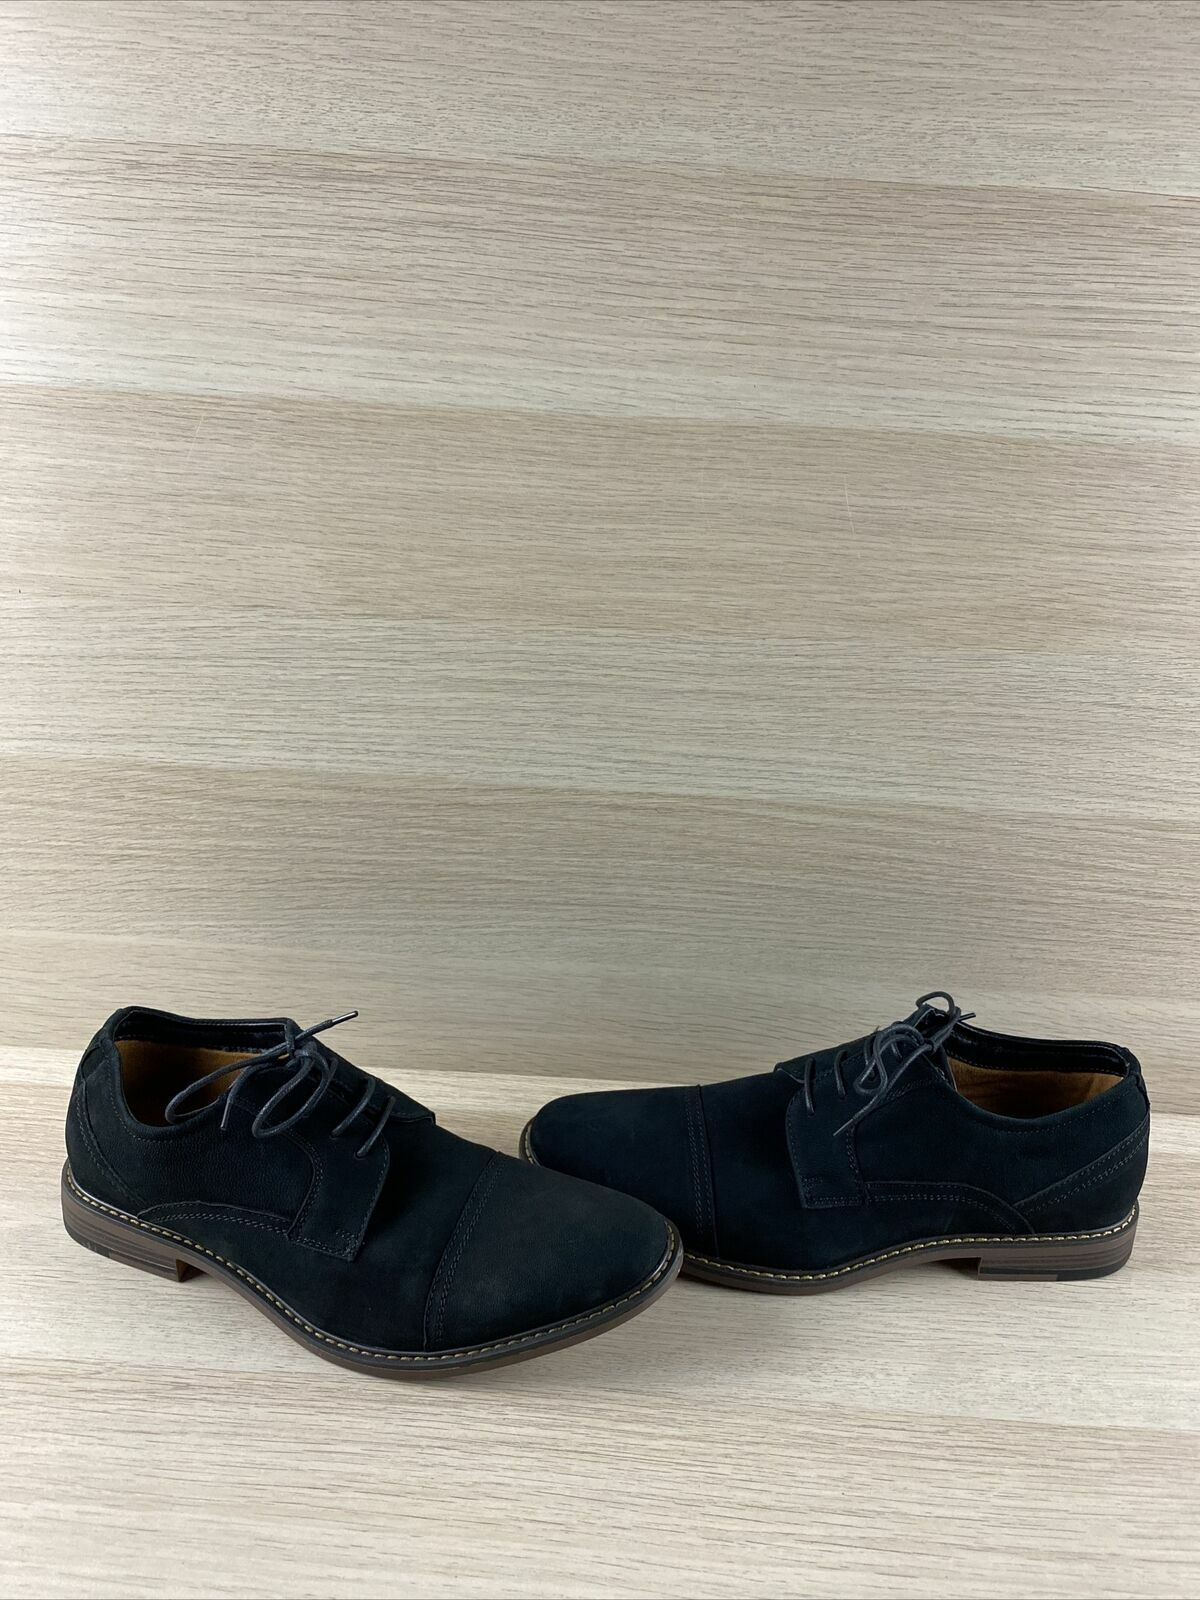 J75 by JUMP 'PAULSON' Black Leather Lace Up Cap Toe Oxfords Men's Size 9.5